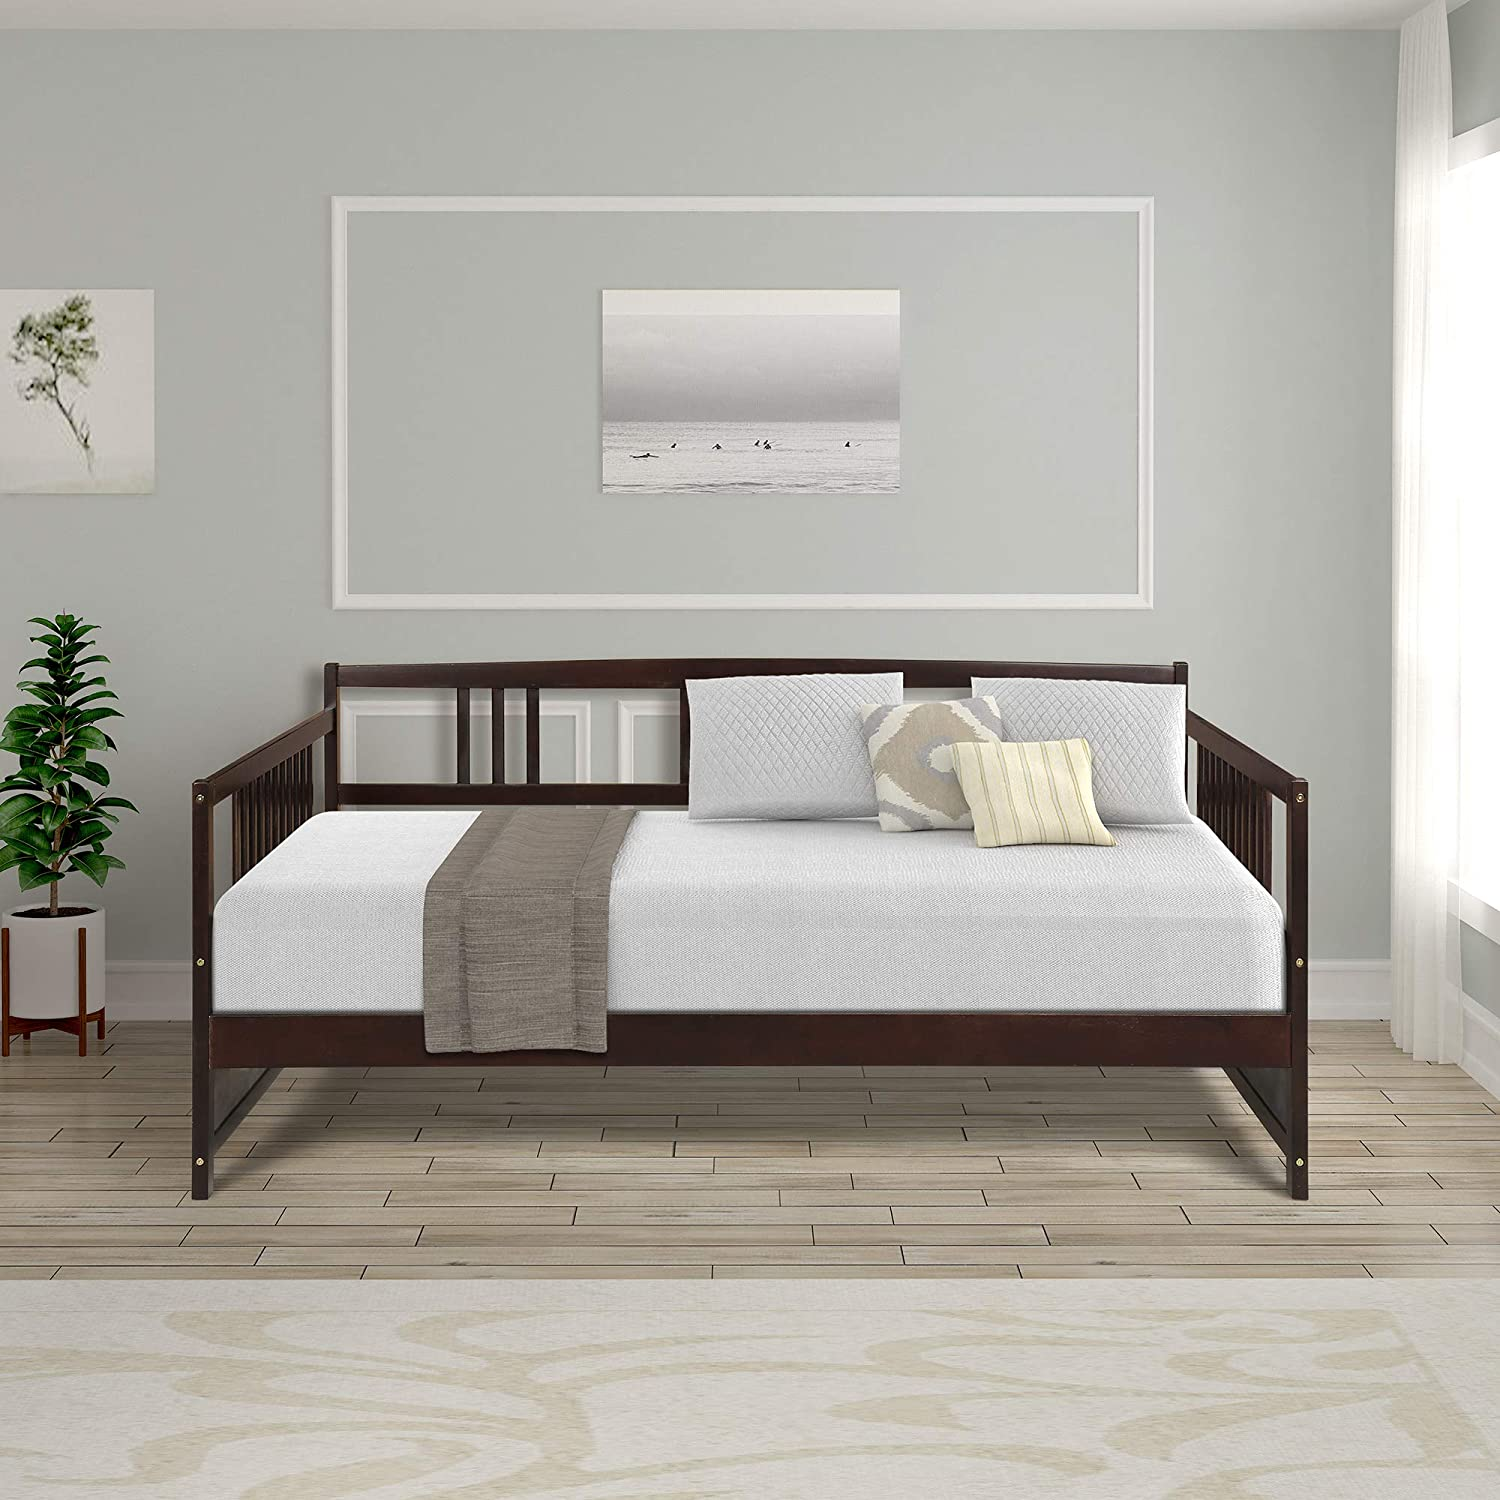 - Amazon.com: FLIEKS Solid Wood Daybed Full Size Daybed With 10